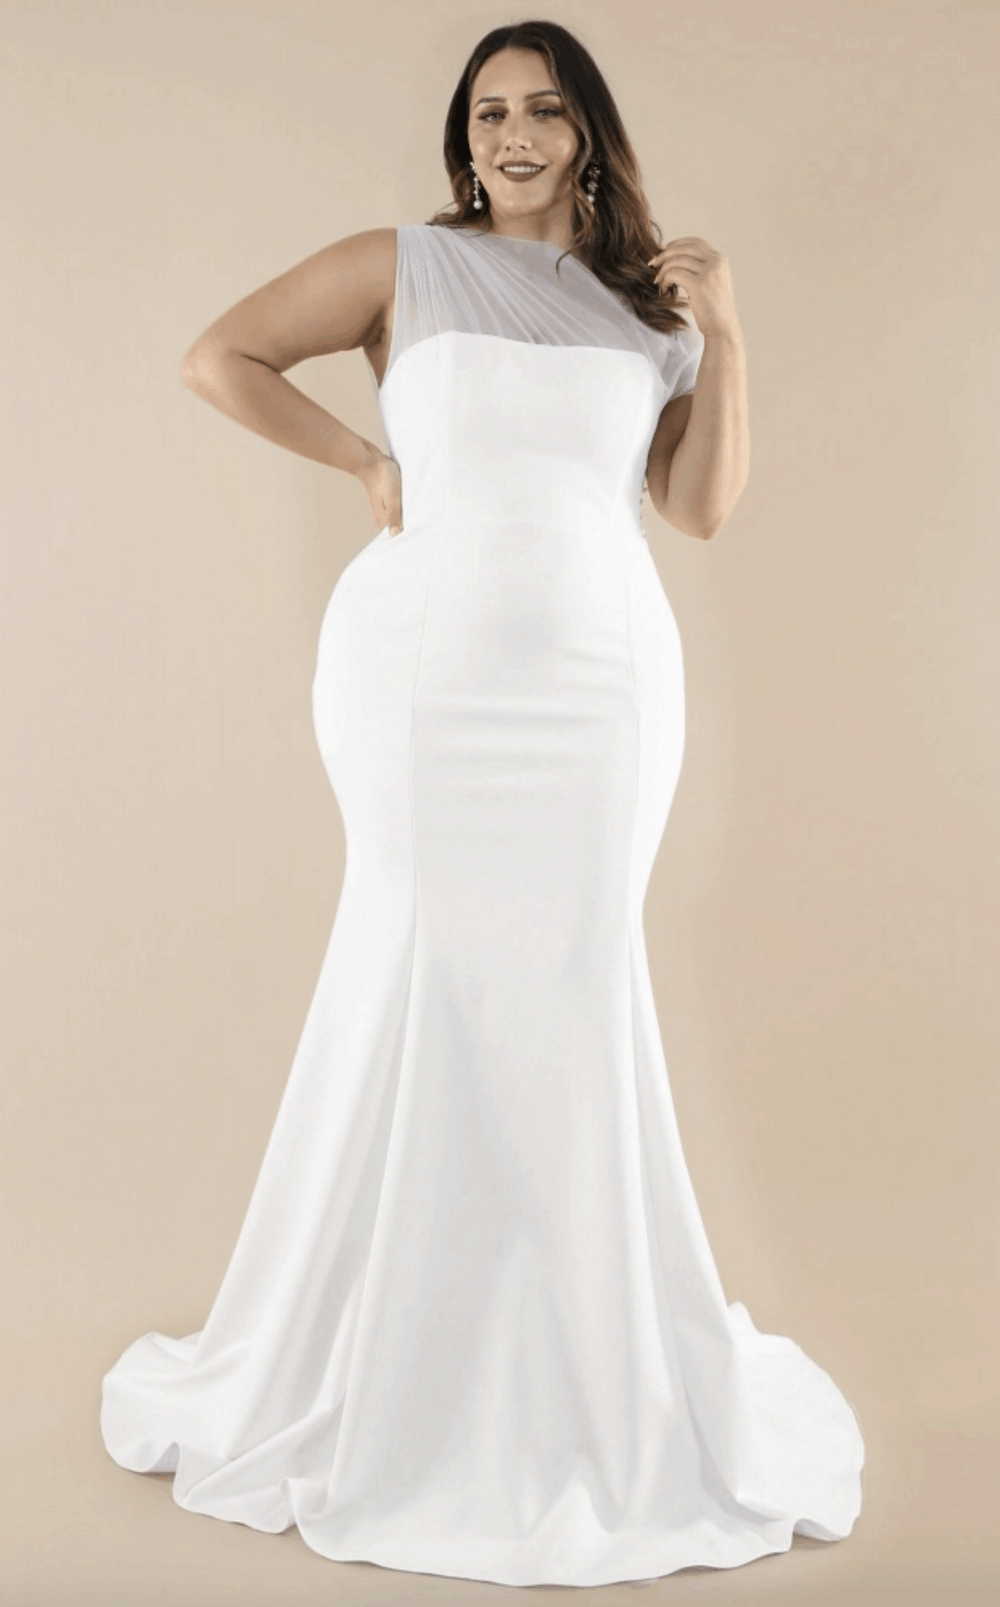 Plus Size Bridal Gowns and Wedding Dresses Perfect for Curvy Brides Mesh Shoulder Bodice